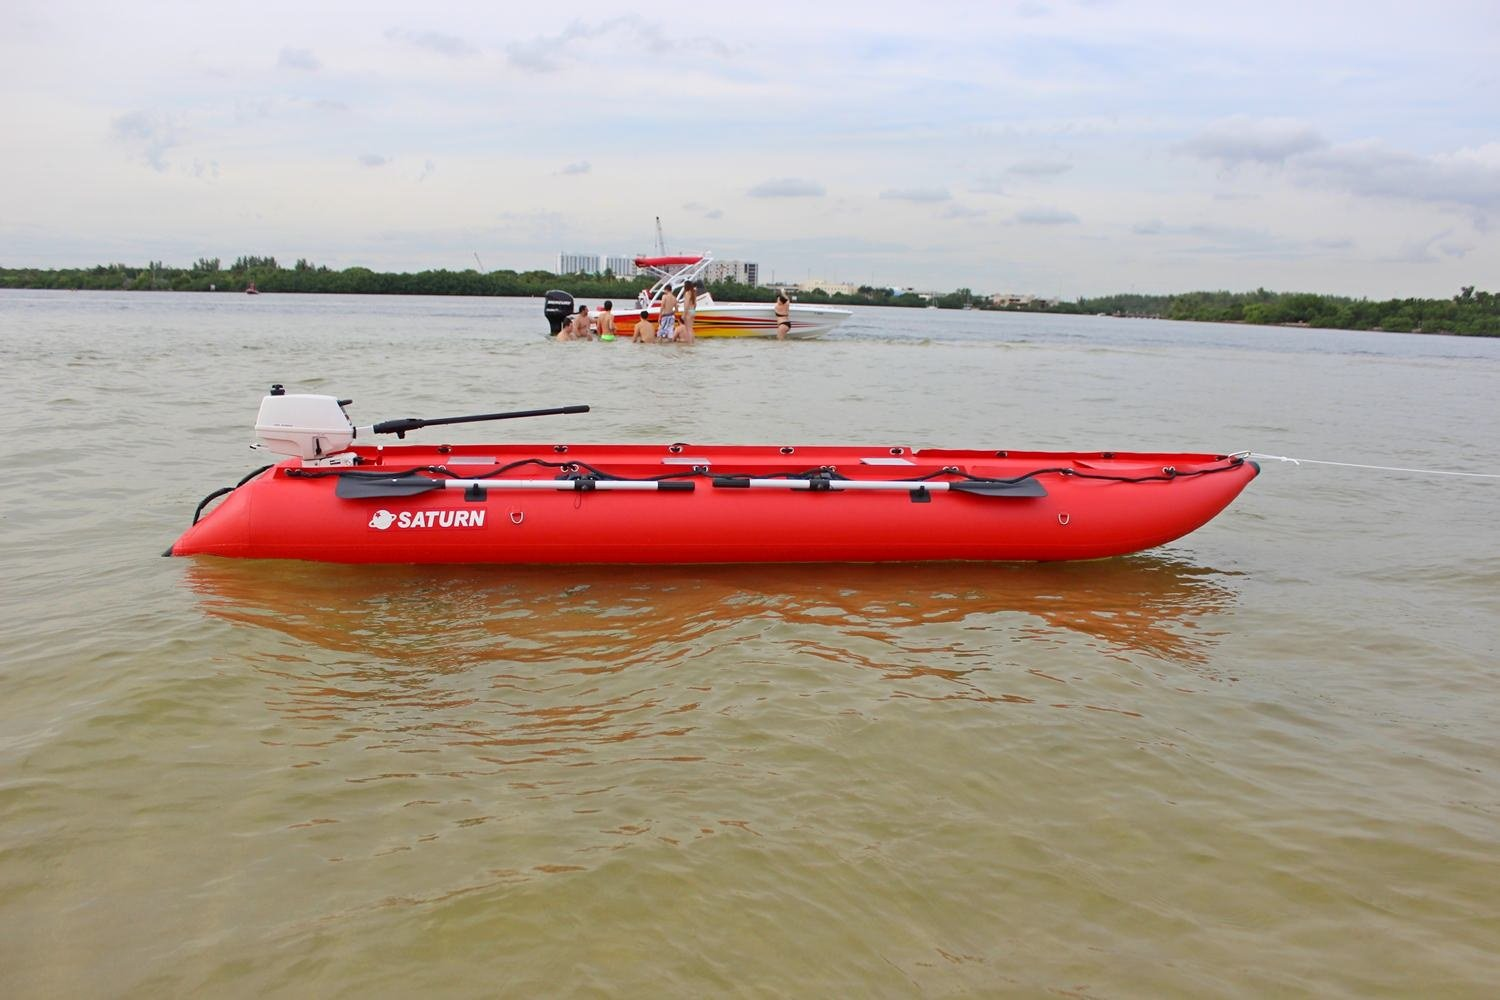 Saturn 15 ft KaBoat SK470 Inflatable Boat and Inflatable Kayak Crossover – Red. Dinghy Tender Raft Inflatable Motor Speed Boat. Narrow fast boat.